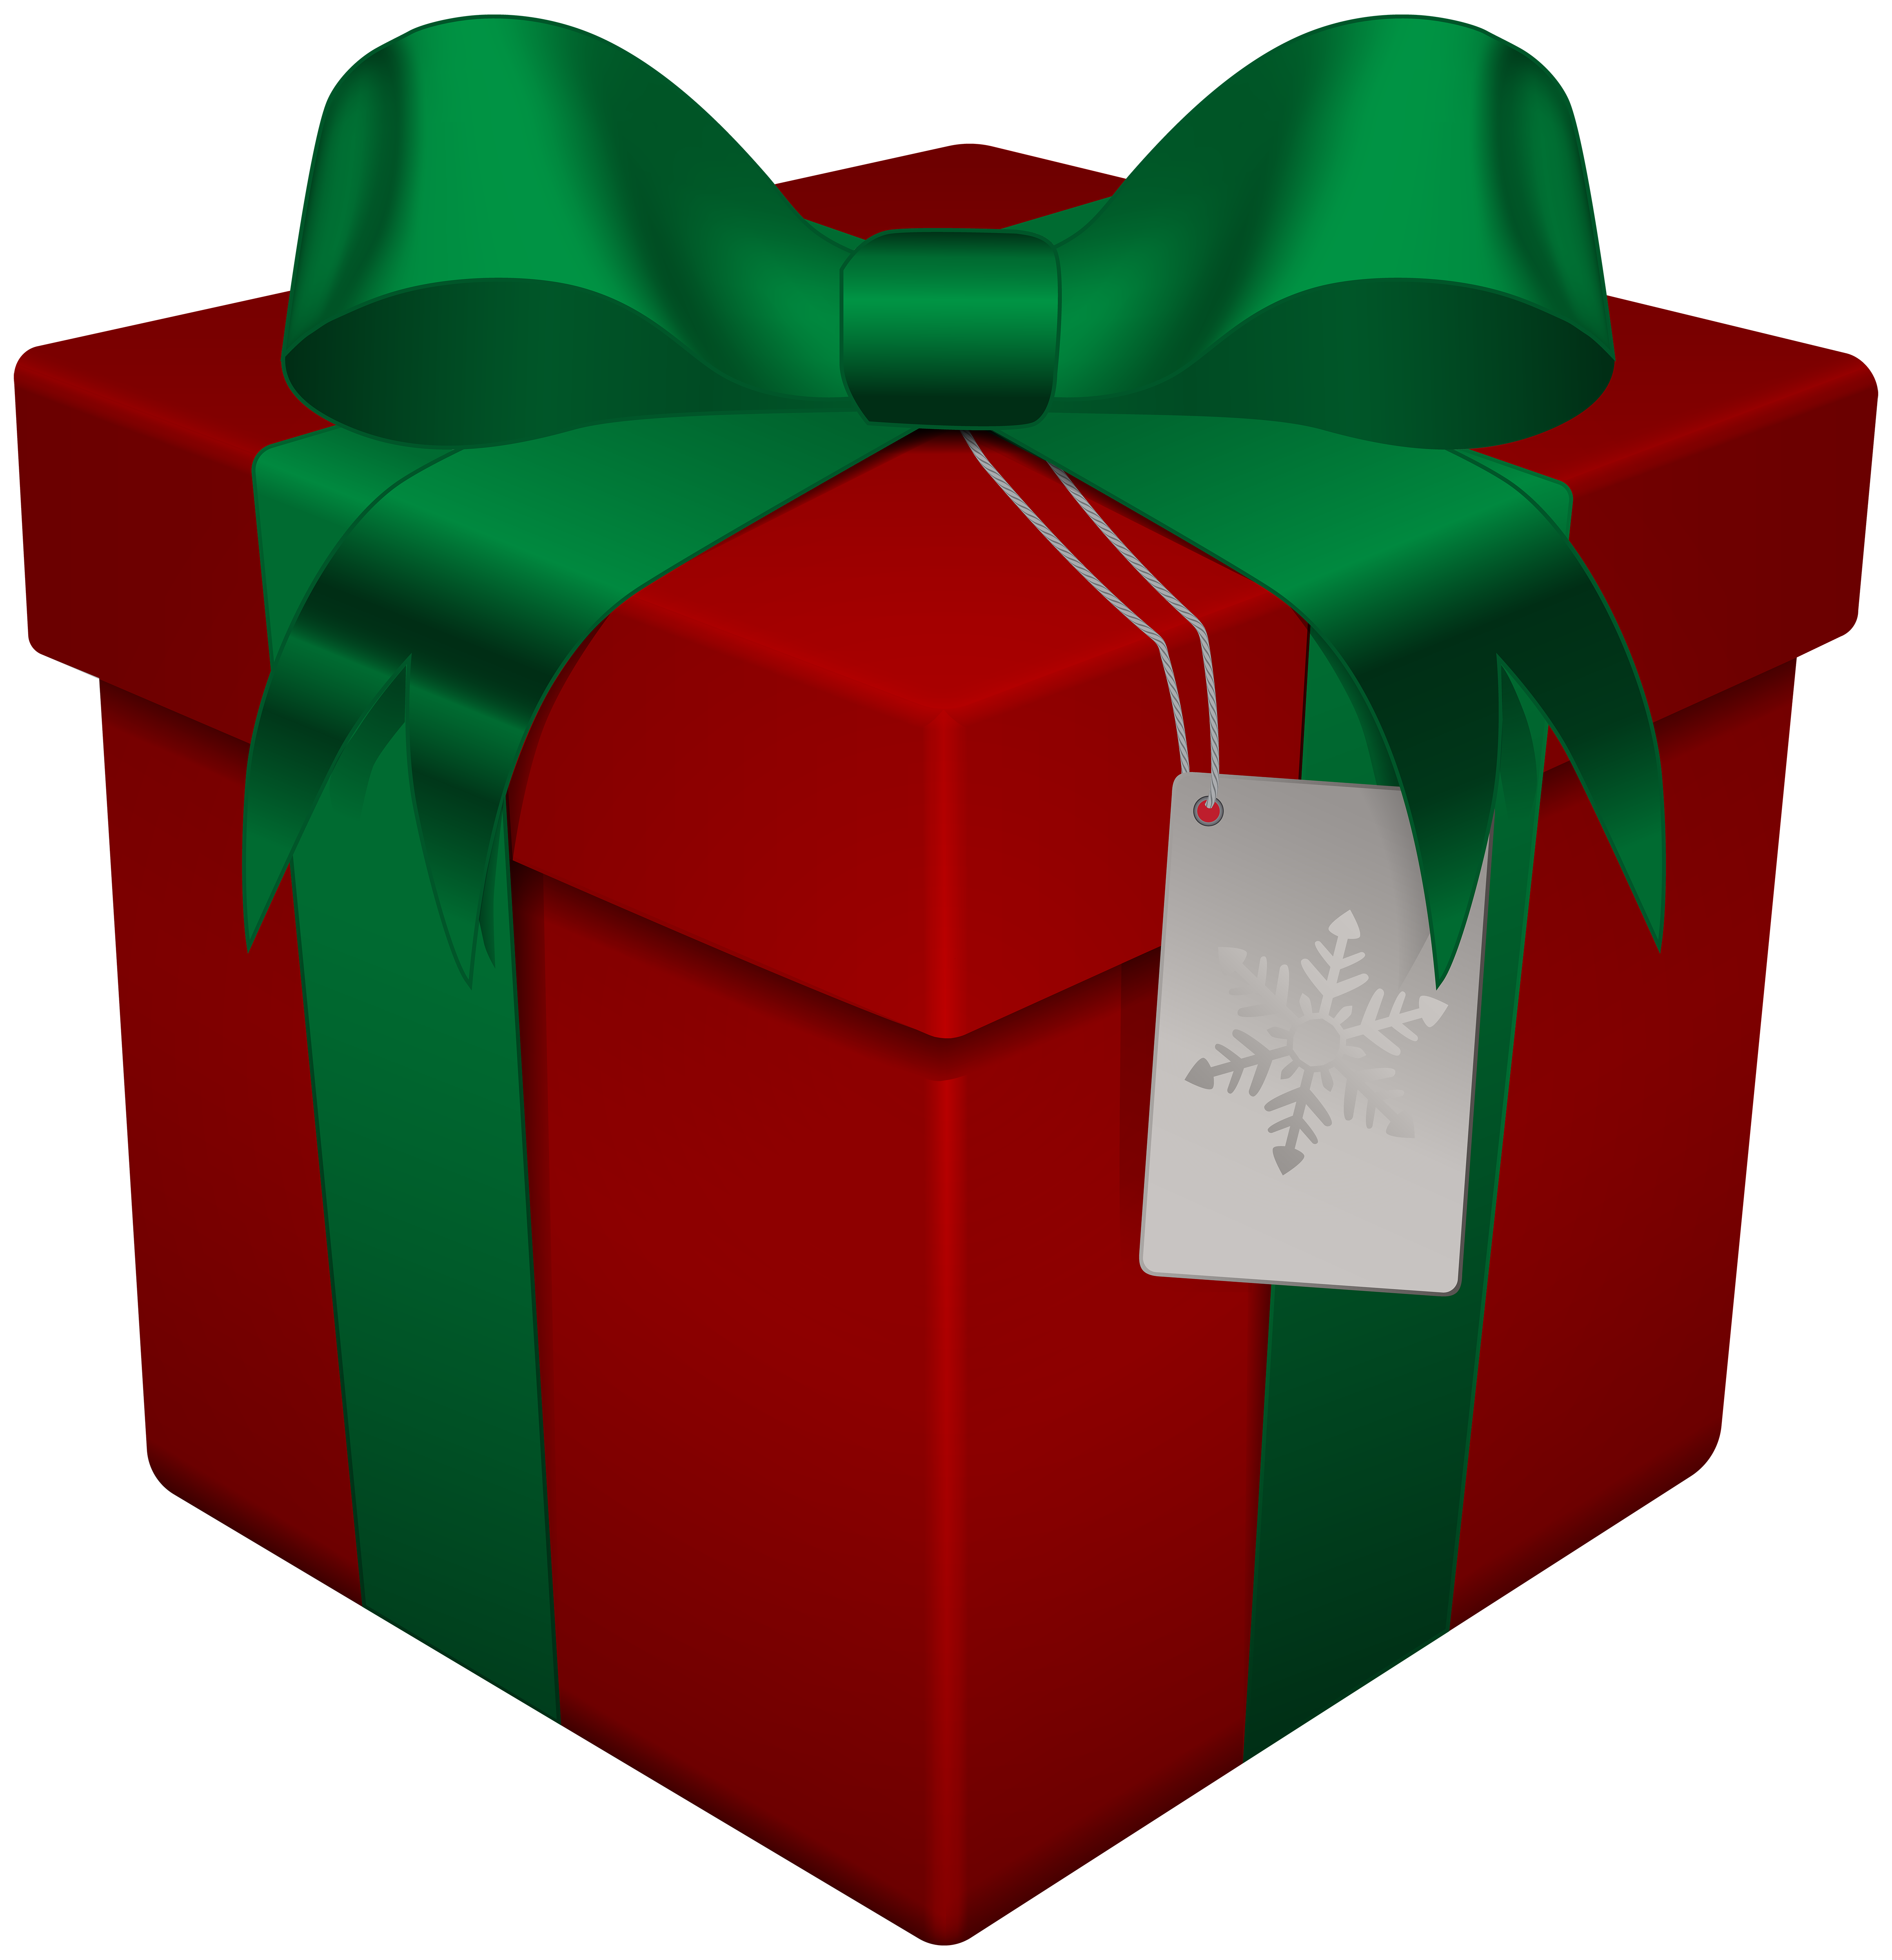 Royalty free christmas present background clipart png graphic freeuse library Gift Png | Free download best Gift Png on ClipArtMag.com graphic freeuse library